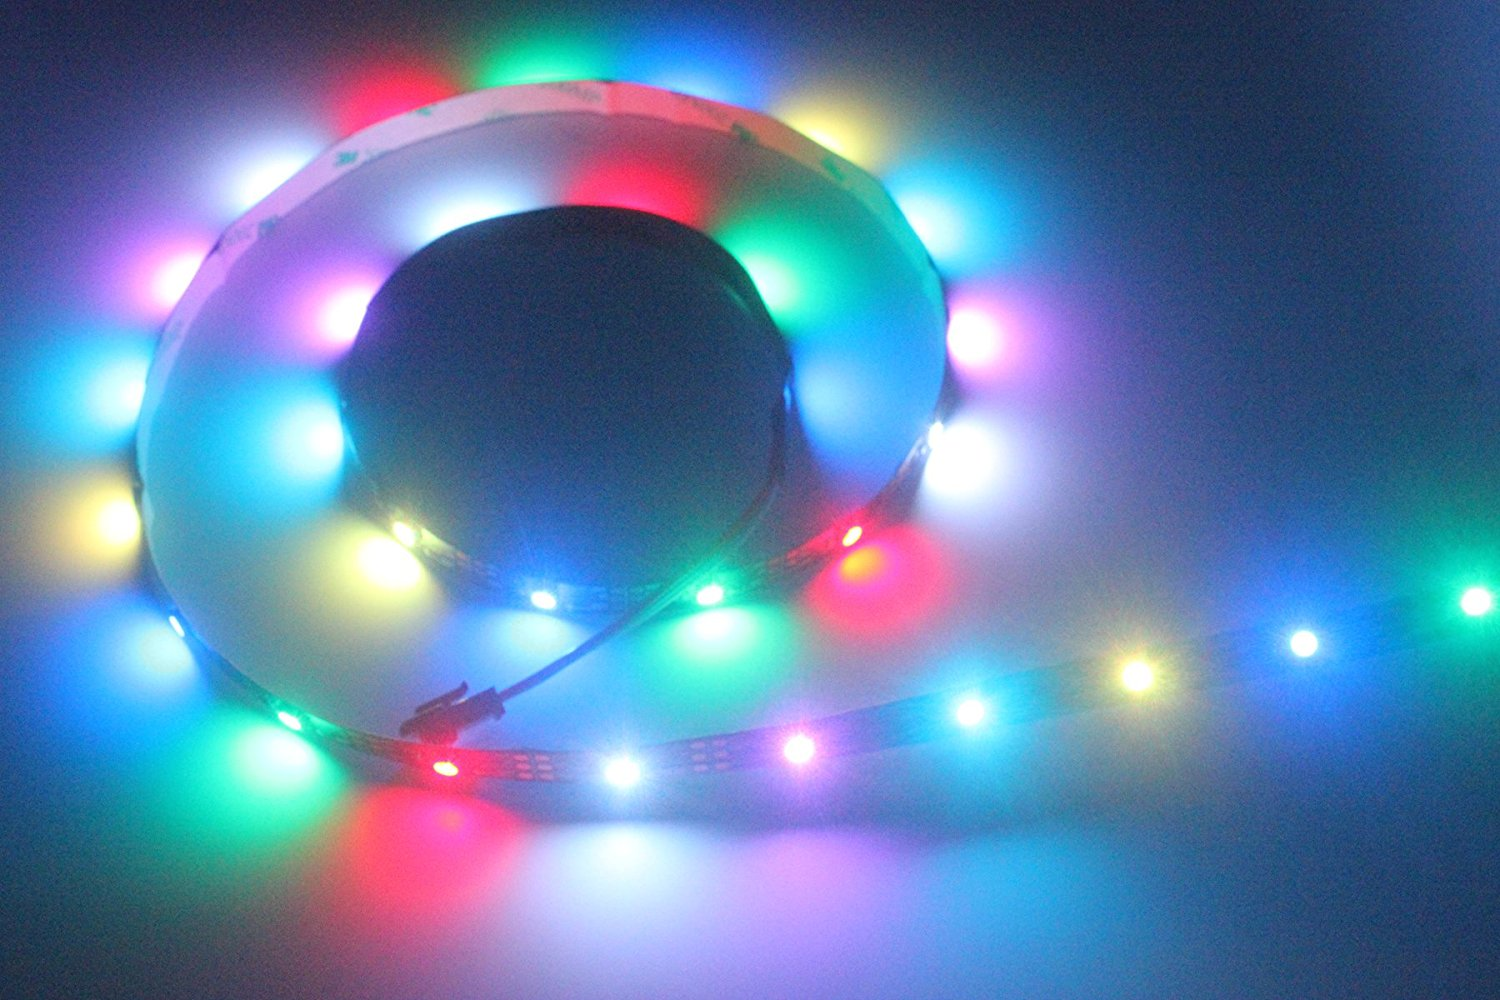 INVOLT WS2812B LED Strip Addressable Programmable 30LED/M 3.2FT 1M, Cuttable Consistant Color for Display Screen, DC 5V Non Waterproof WS2811-Chip Built-in